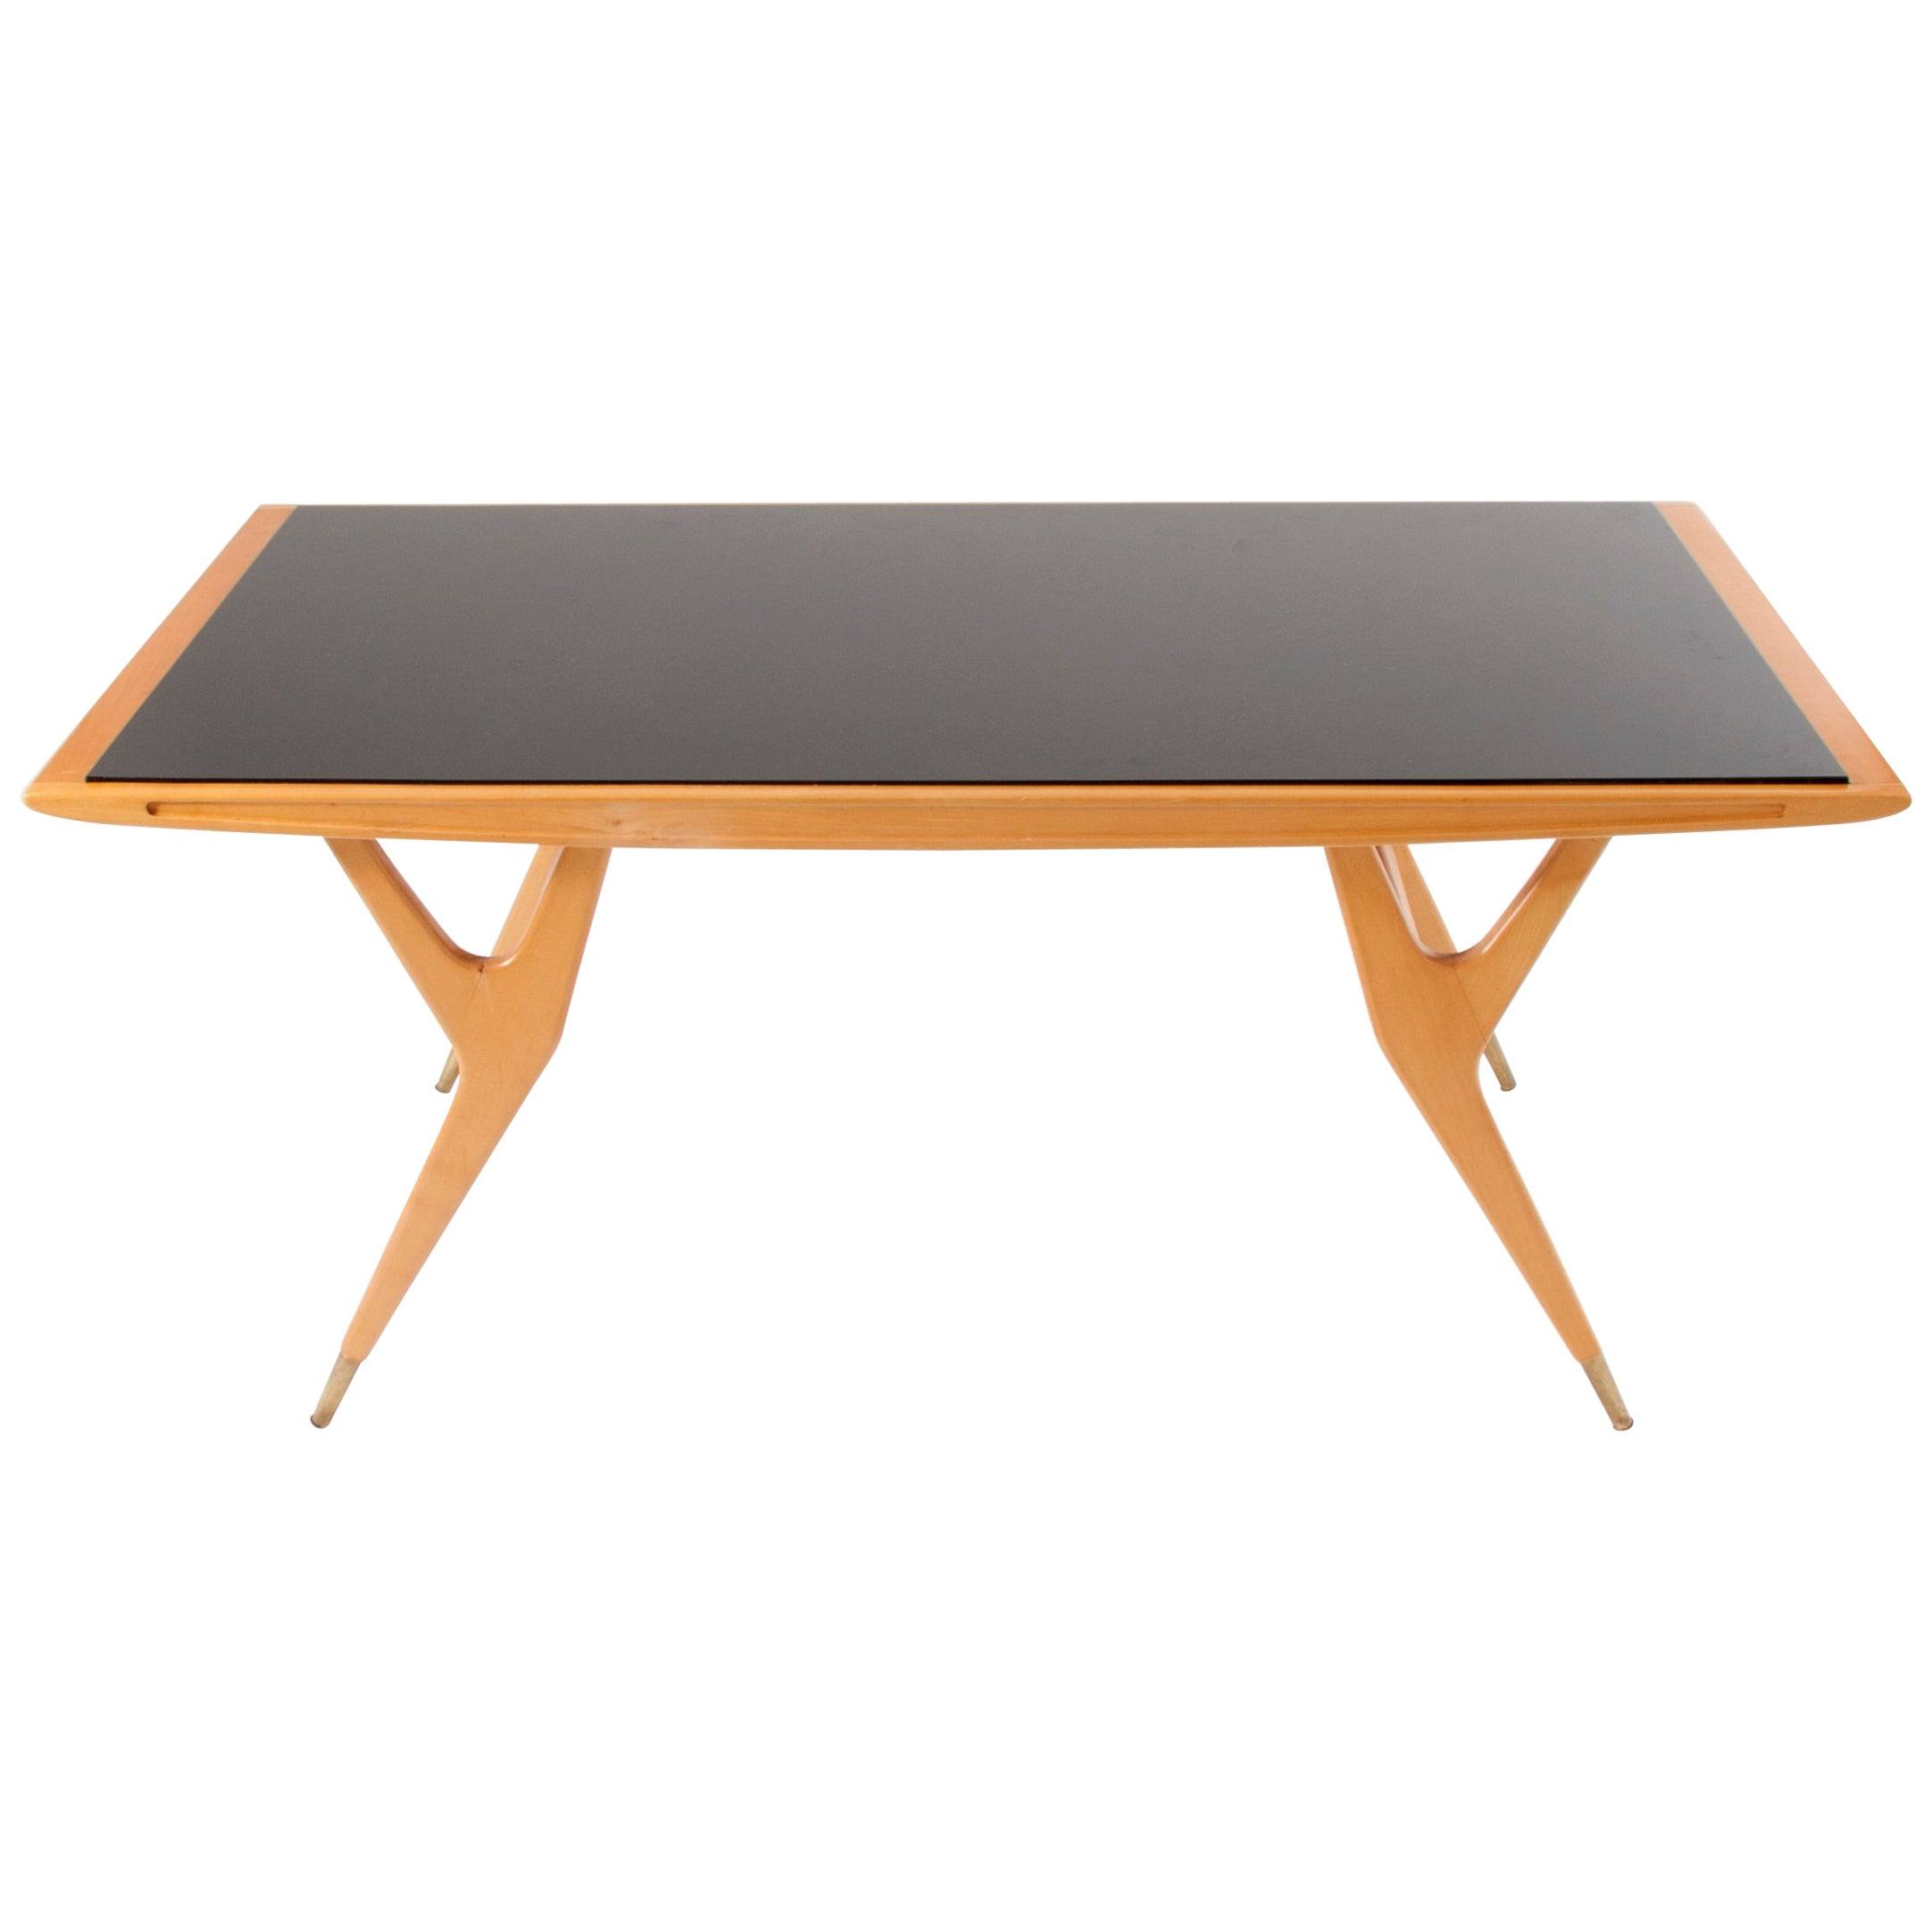 Exceptional Midcentury Coffee Table Attributed to Ico Parisi, Italy, 1950s